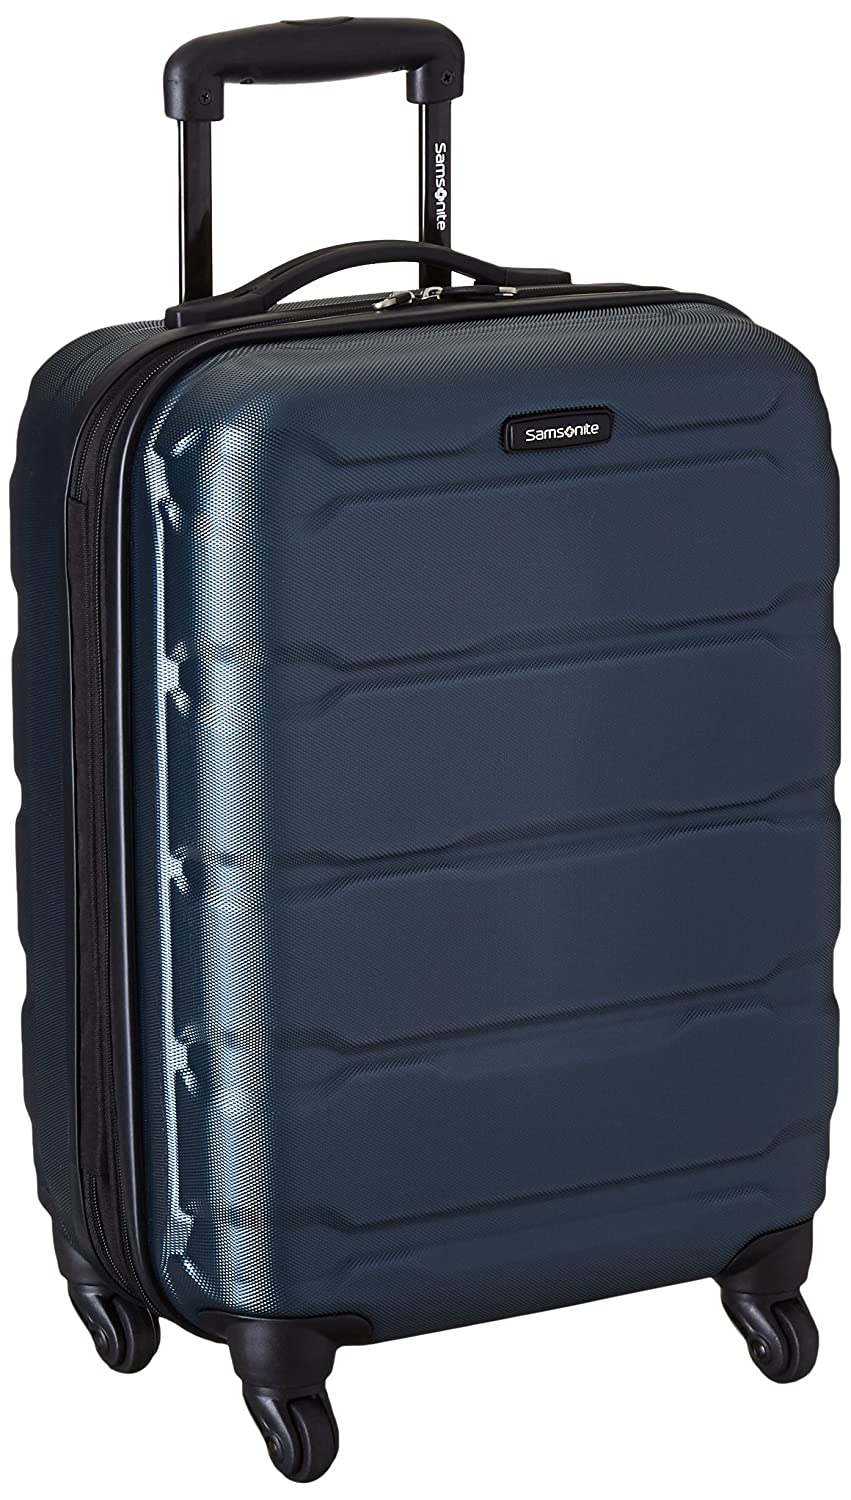 Samsonite Omni PC Hardside Spinner 20, Caribbean Blue, One Size Samsonite Corporation 68308-2479